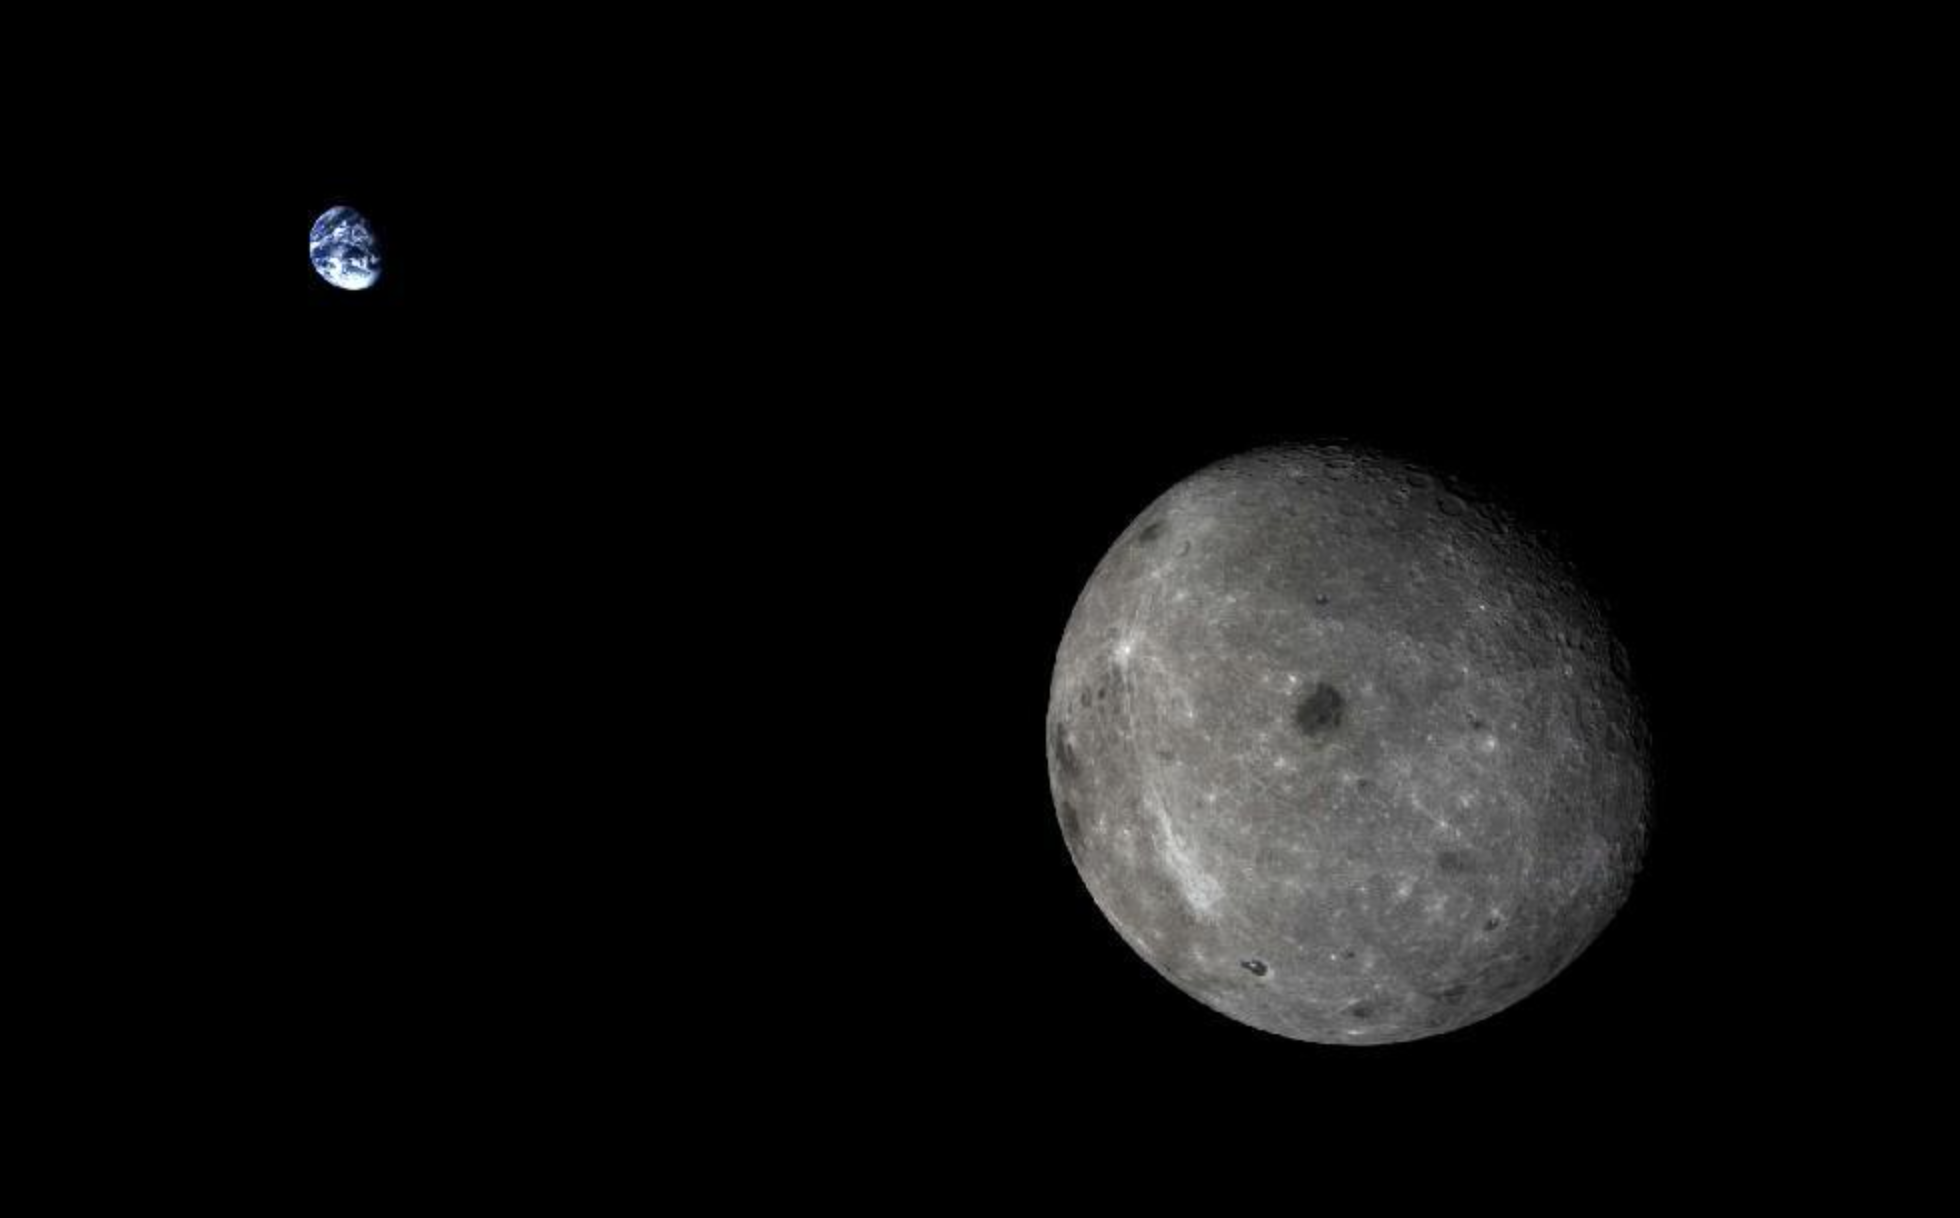 Amazing new image of the Earth and the Moon taken outside lunar orbit